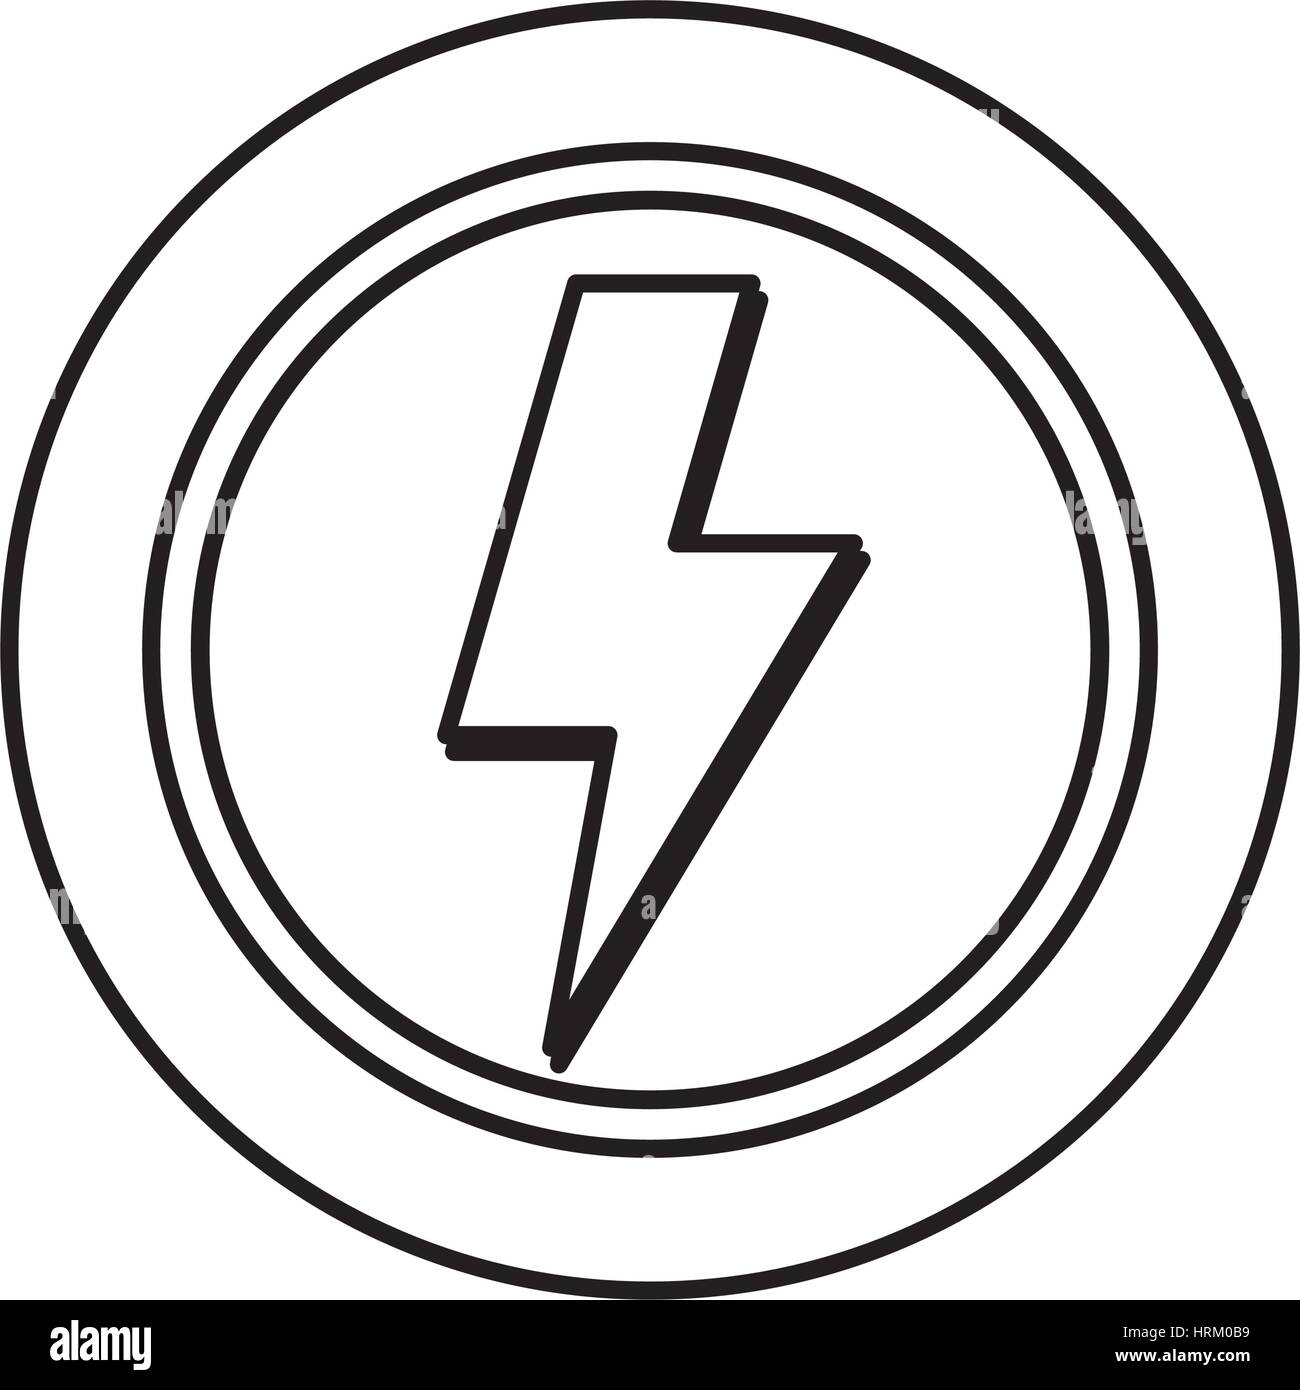 Ray electricity symbol Stock Vector Art & Illustration, Vector Image ...